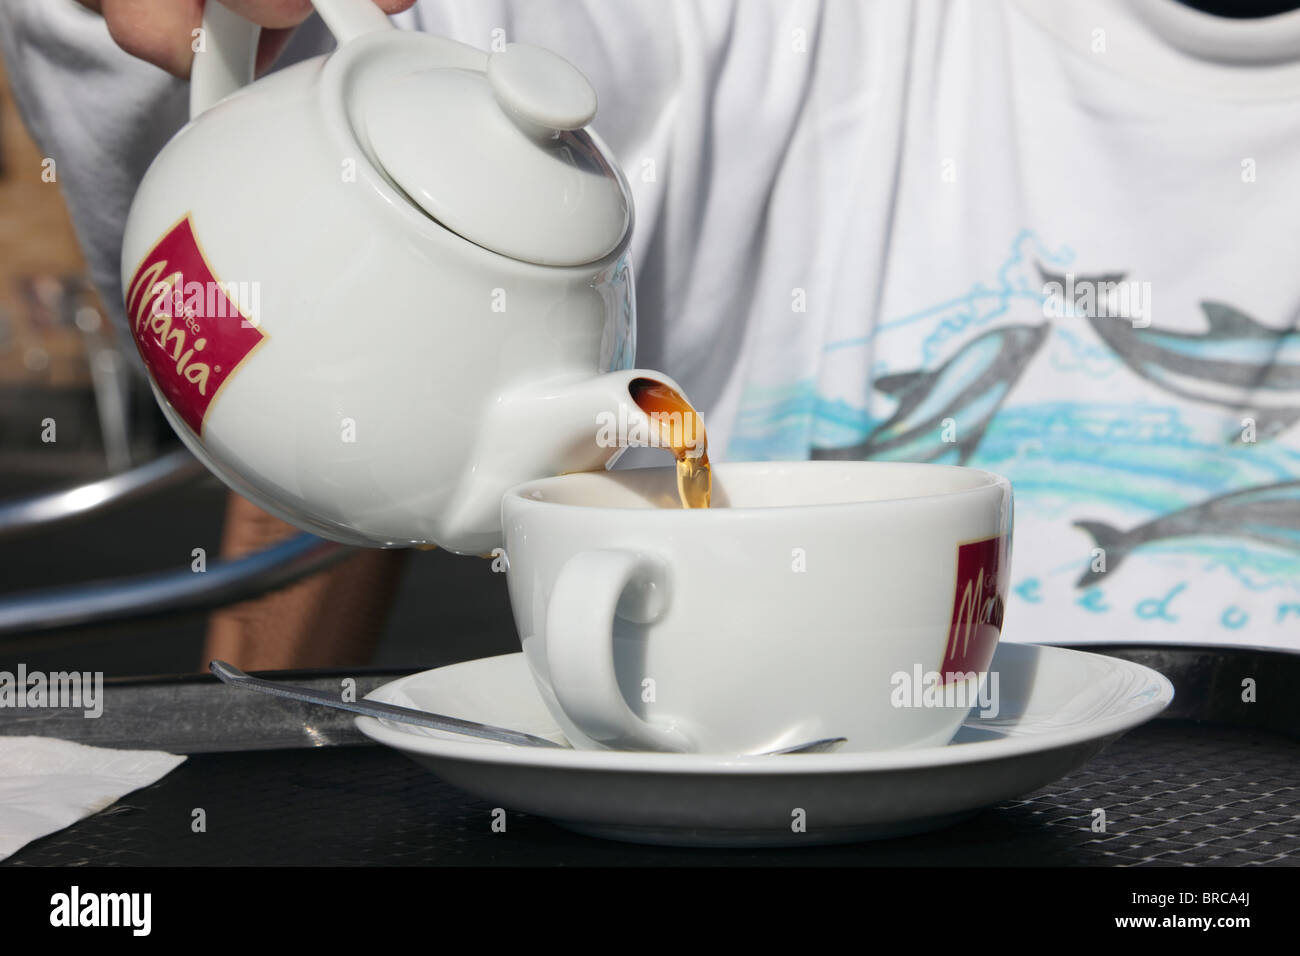 Person in a Coffee Mania café pouring tea from a teapot into a cup and saucer. UK, Europe. - Stock Image